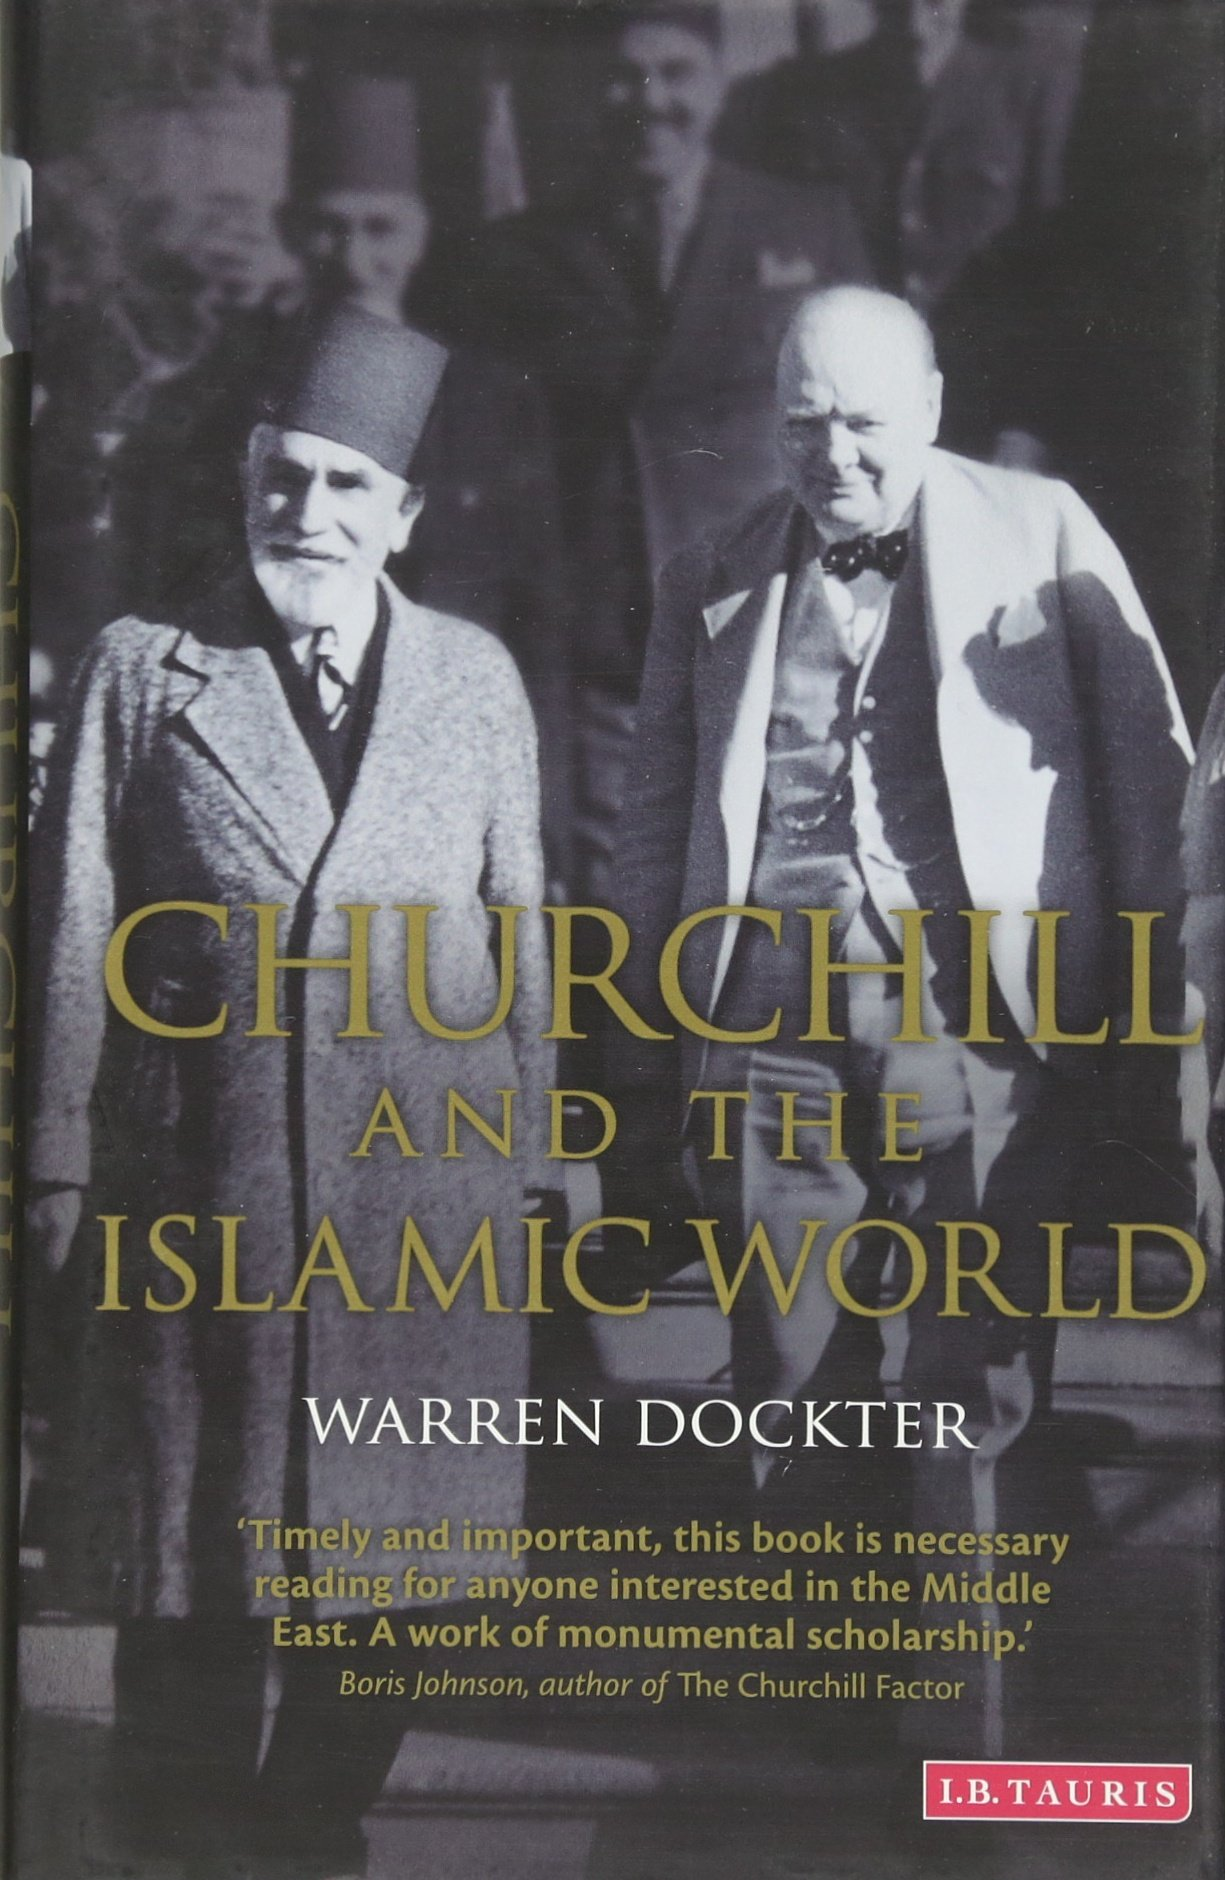 Churchill And The Islamic World: Orientalism, Empire And Diplomacy In The  Middle East: Amazon: Warren Dockter: 9781780768182: Books